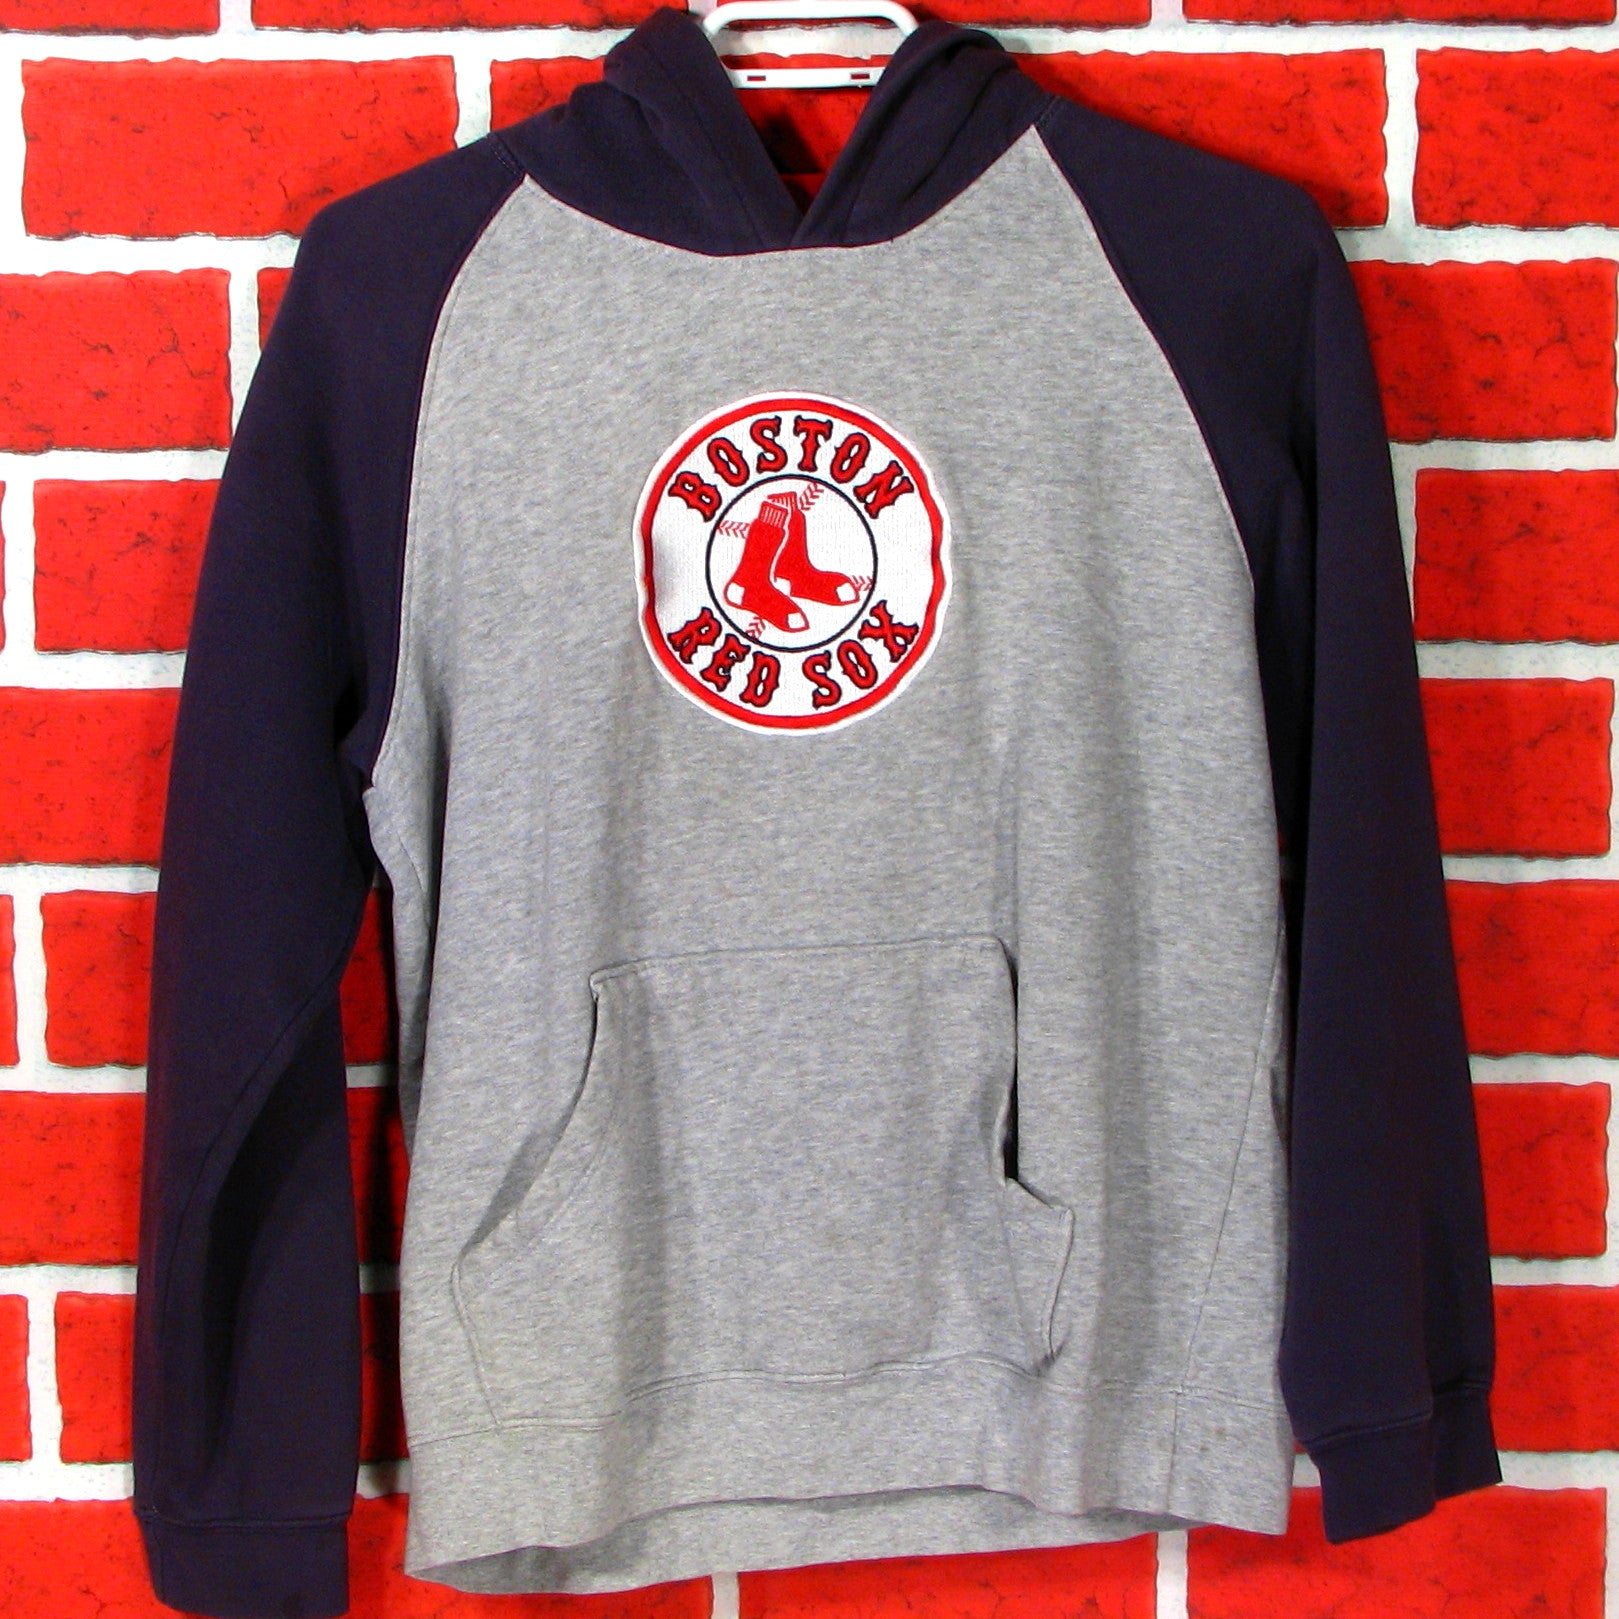 detailing e862f 16c36 Boston Red Sox Hoodie Mens/Youth